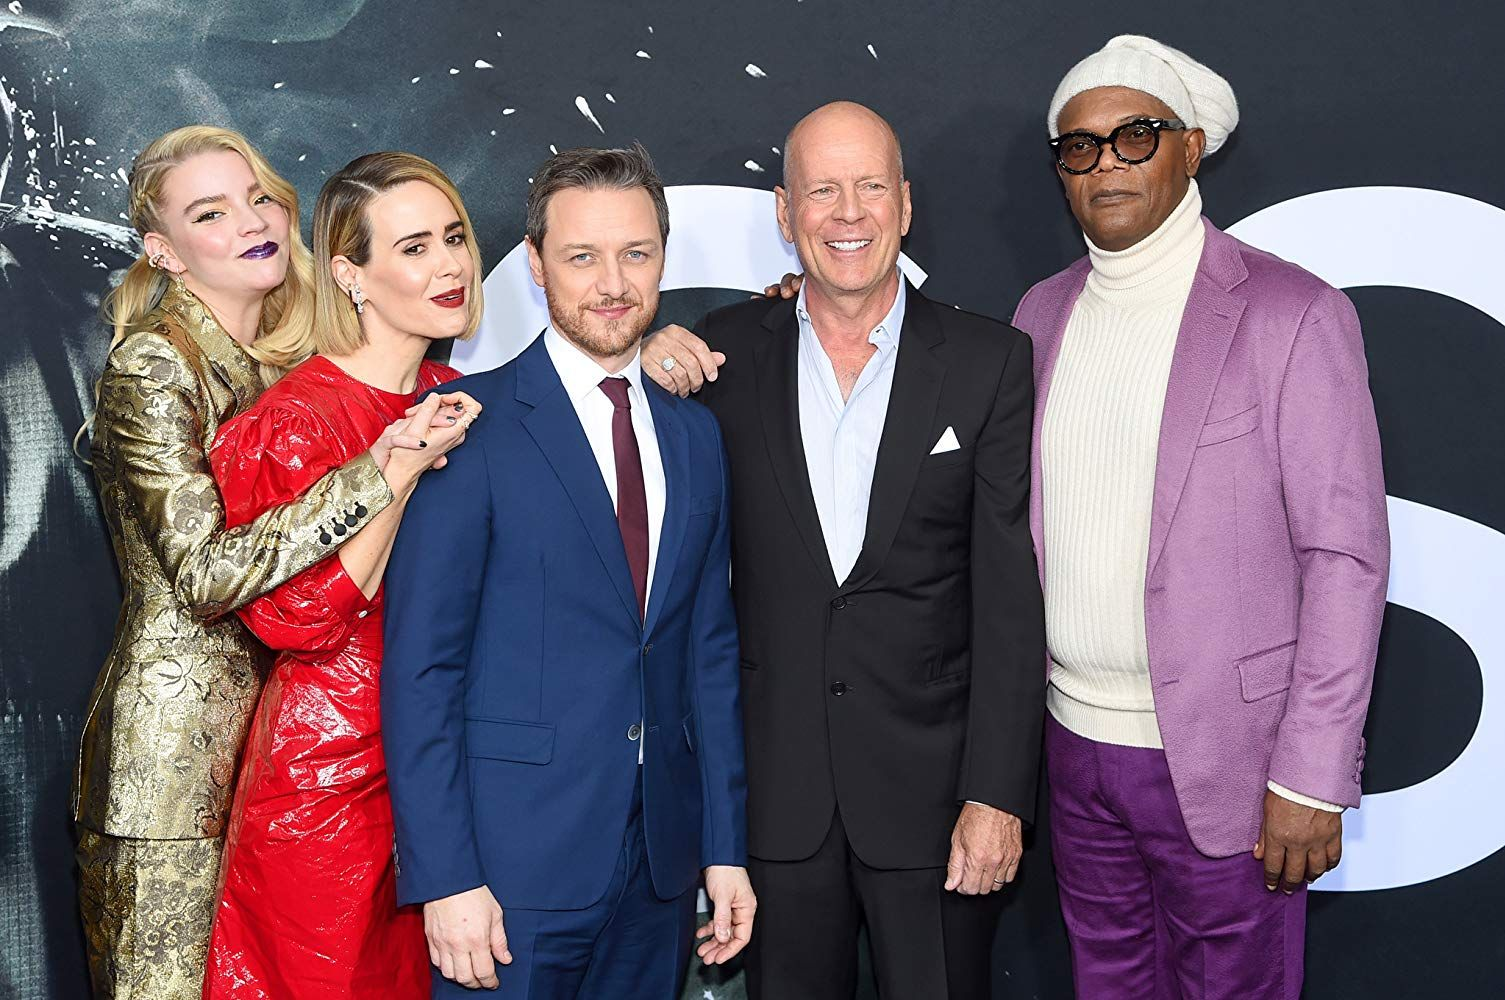 Samuel L Jackson Bruce Willis Sarah Paulson James Mcavoy And Anya Taylor Joy At An Event For Glass 201 James Mcavoy Anya Taylor Joy Split Anya Taylor Joy